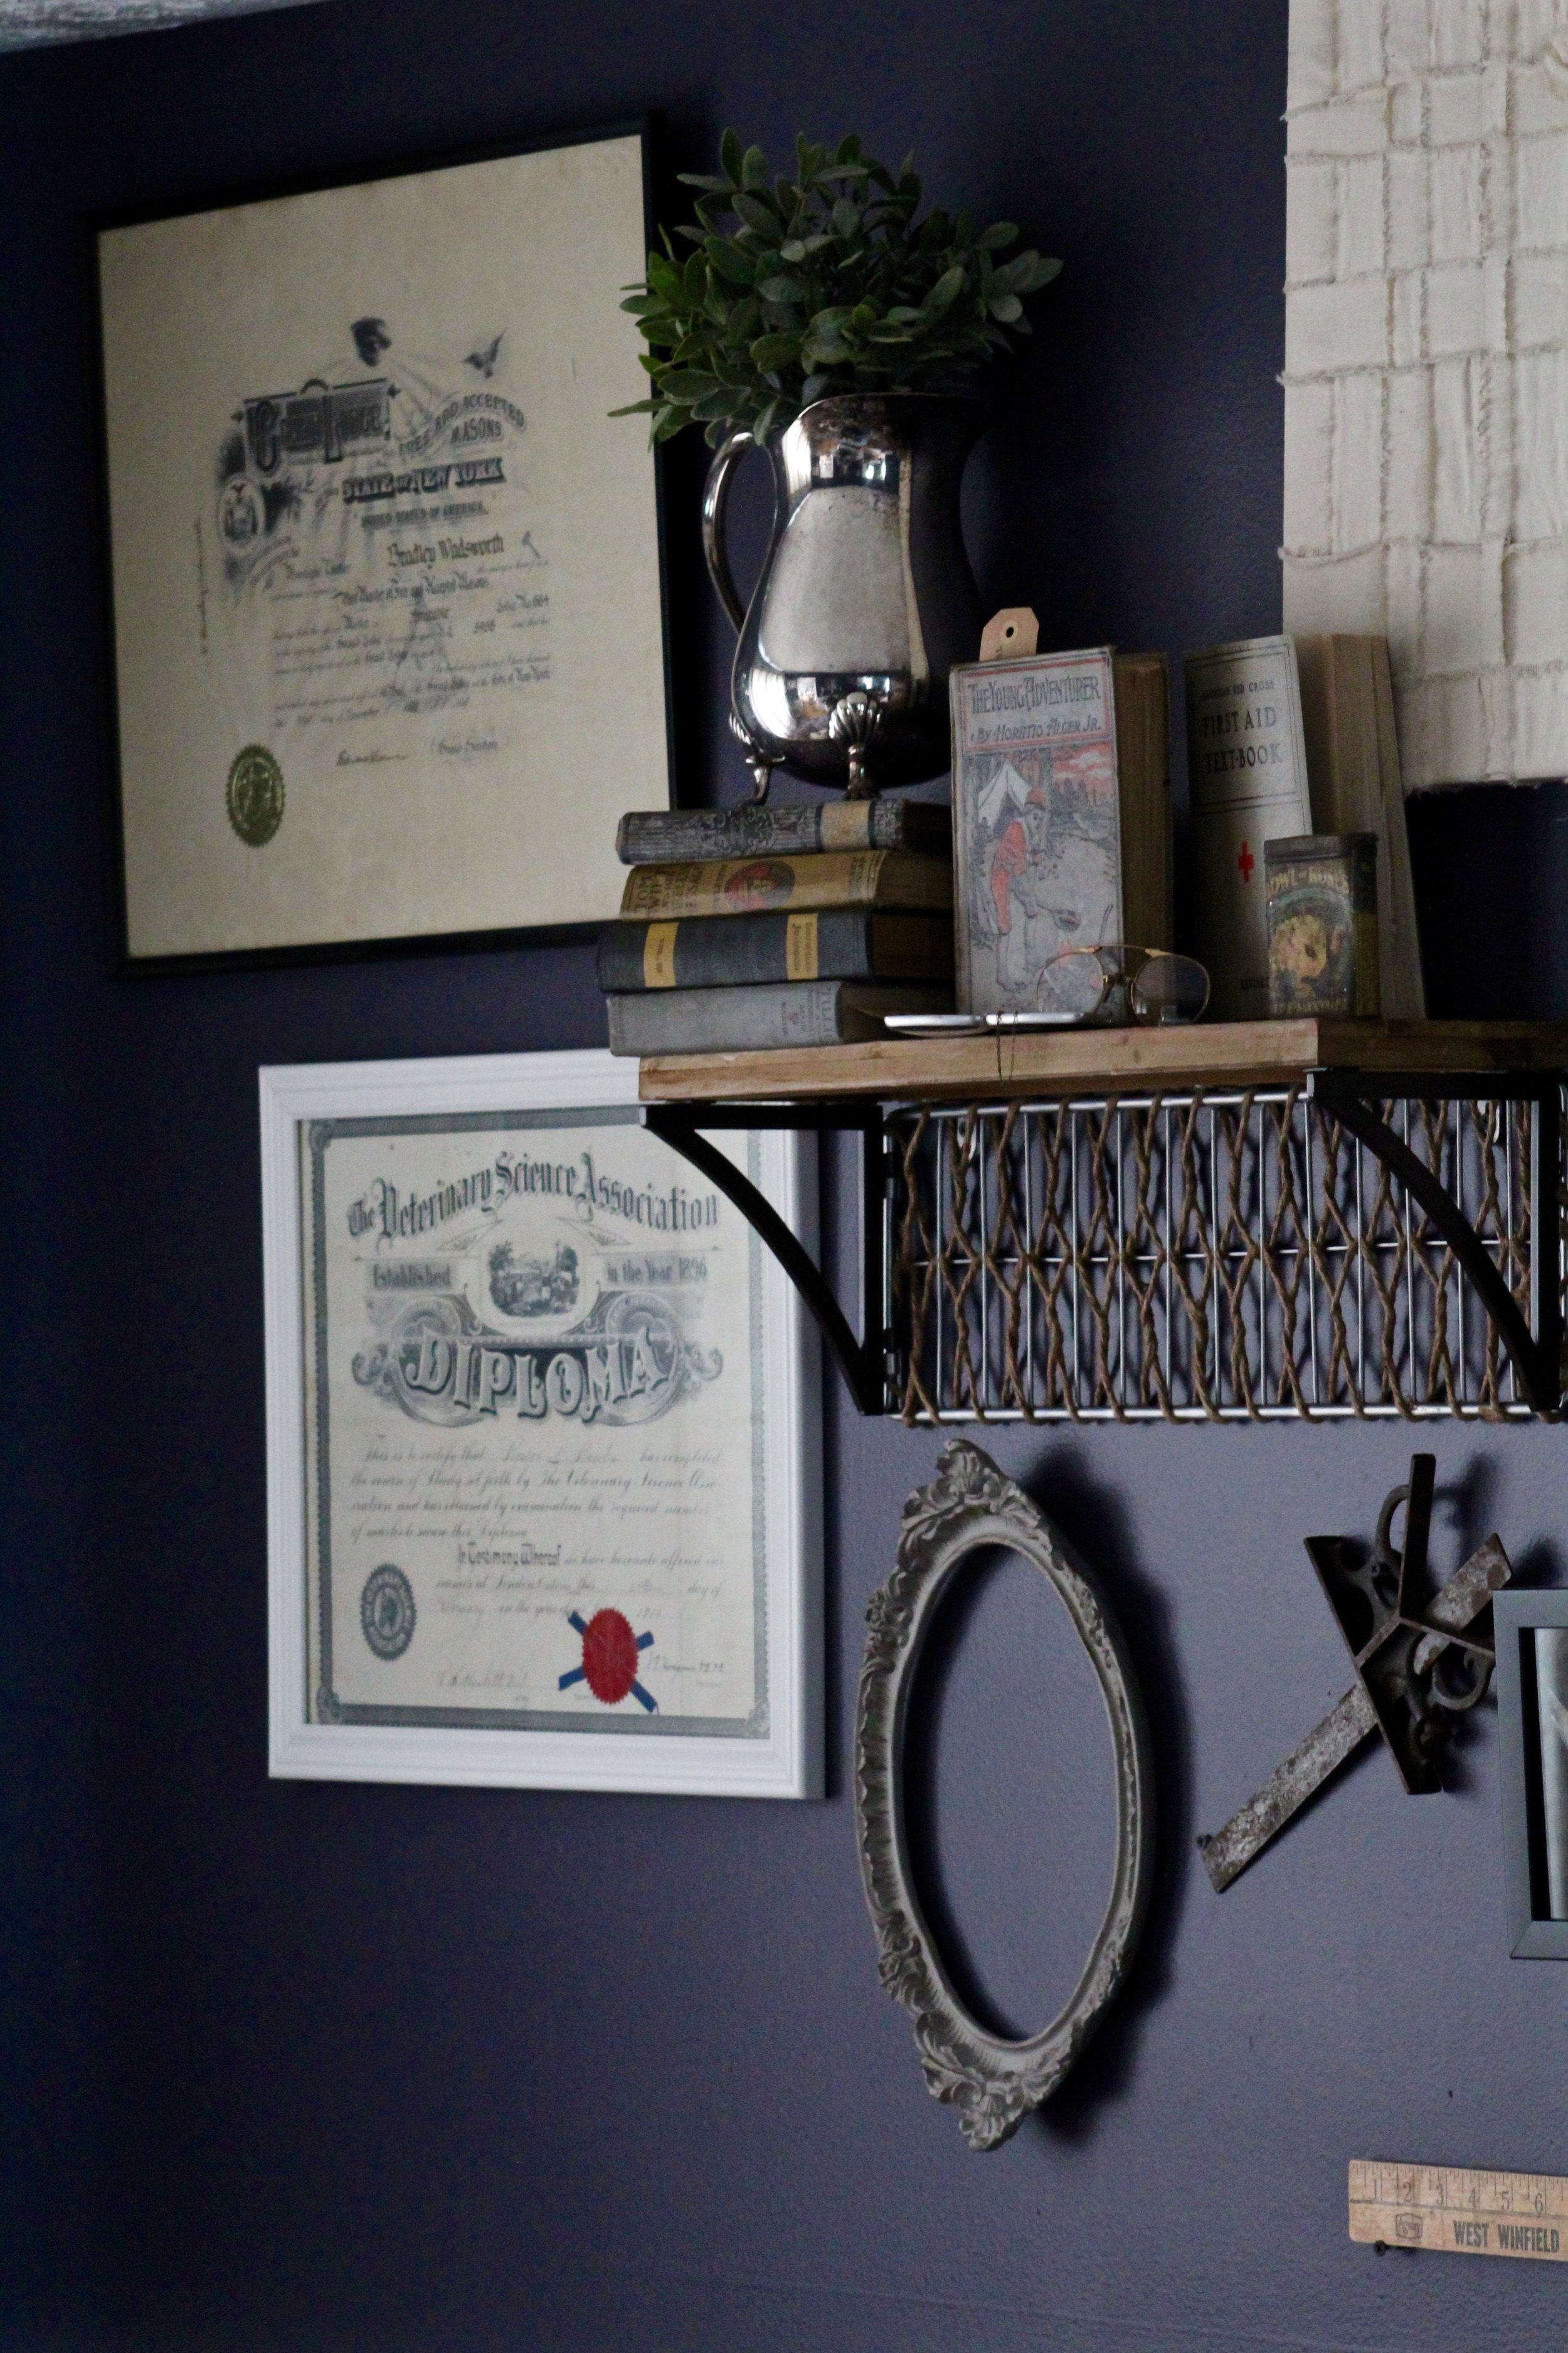 This wall is filled with items we've collected from our family's past. Such as a Veterinary Diploma from my Great Grandfather, a morse code tapper from Steve's Great Grandpa, Tools from family stone masons, and My Grandma and Grandpa's wedding announcement and coverage from the local paper.